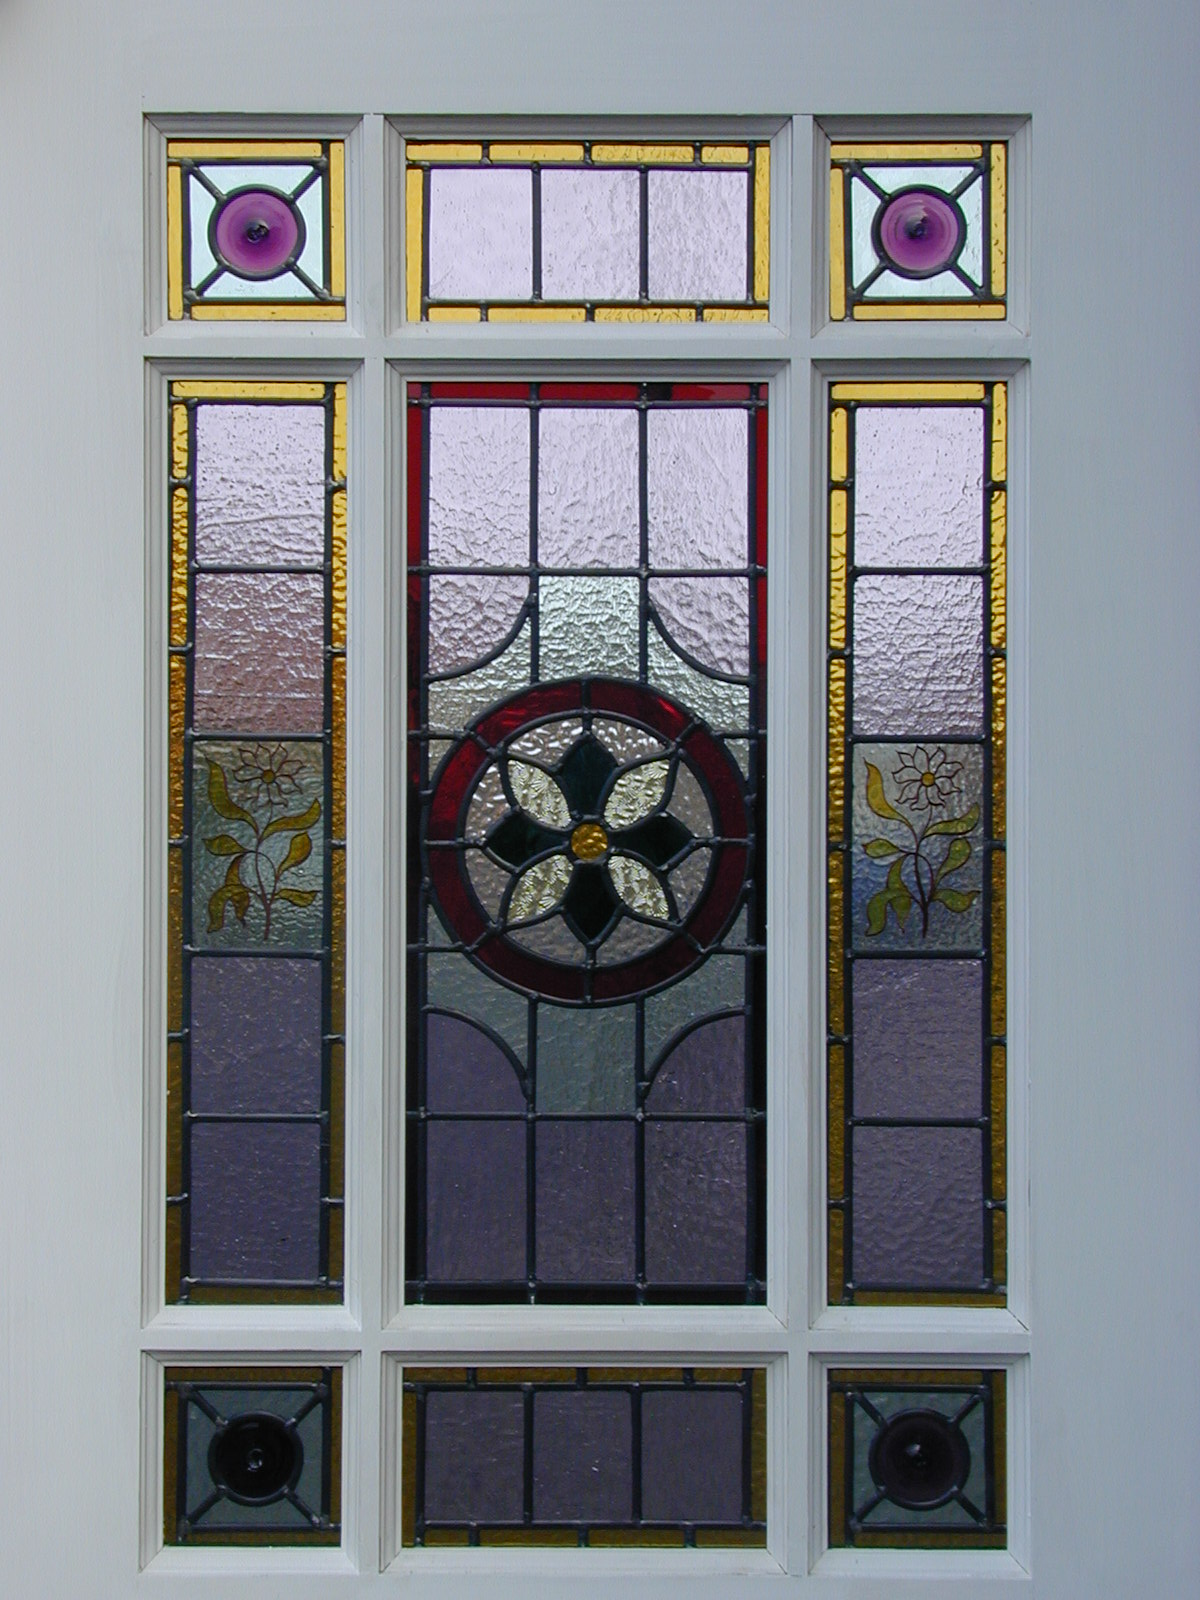 1600 #9E852D BESPOKE Doors & Decorative Glass pic Stained Glass Panels For Front Doors 40211200